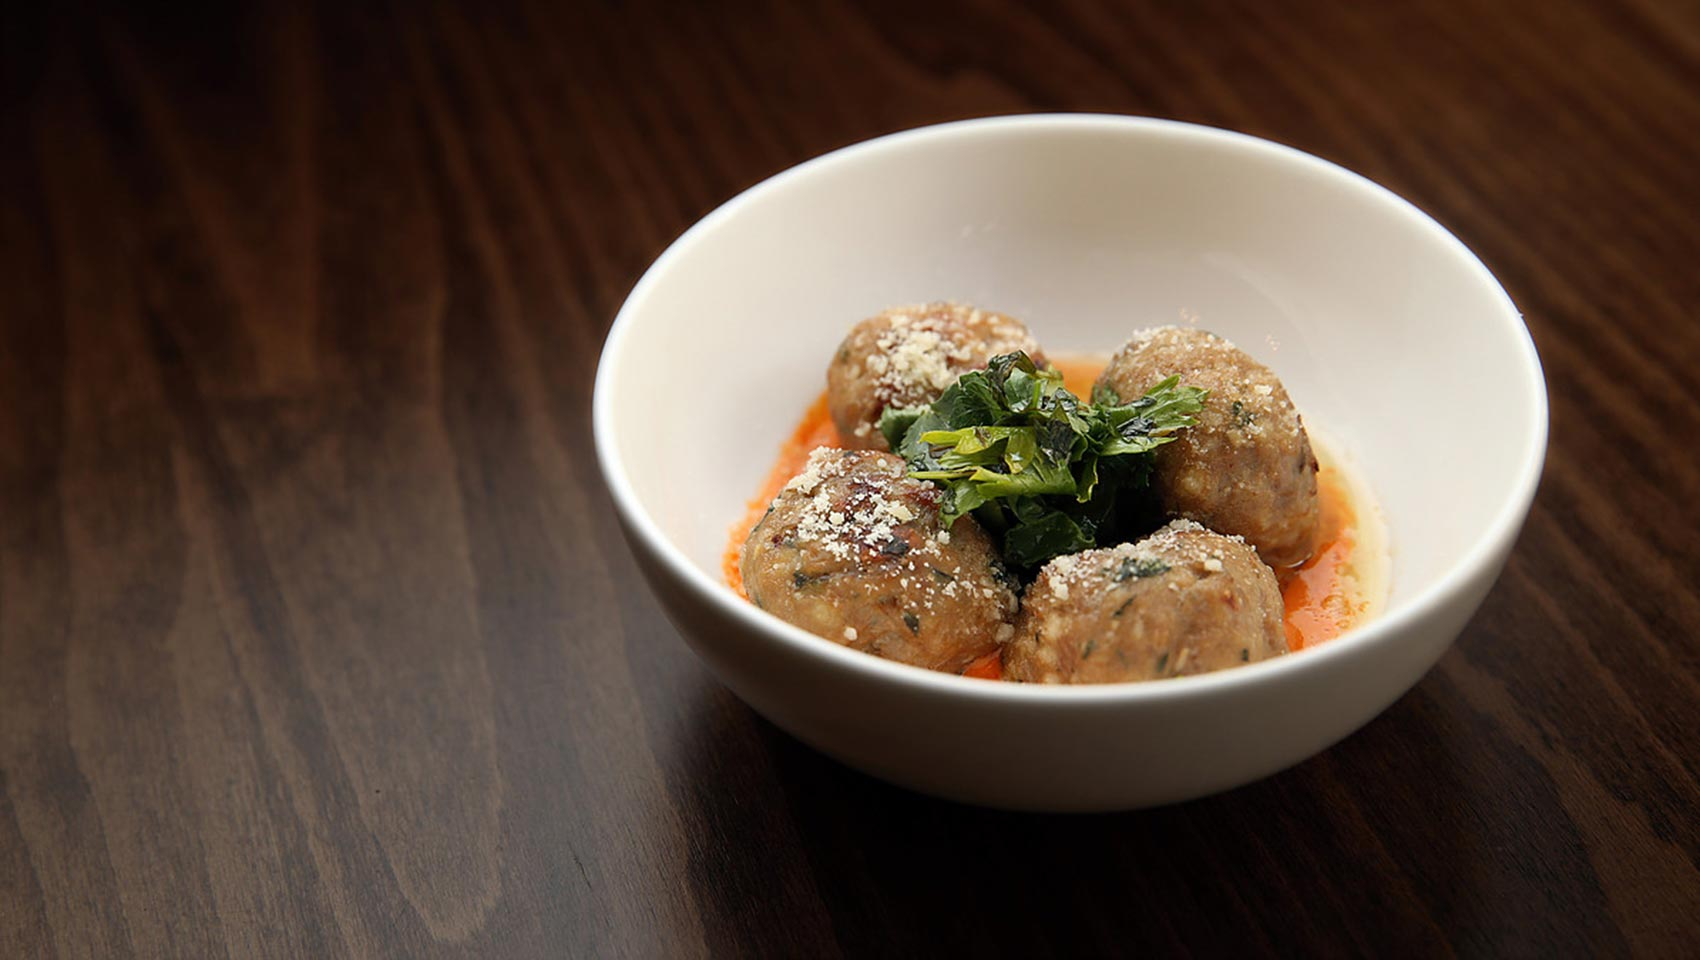 Parker's Downtown lamb meatballs